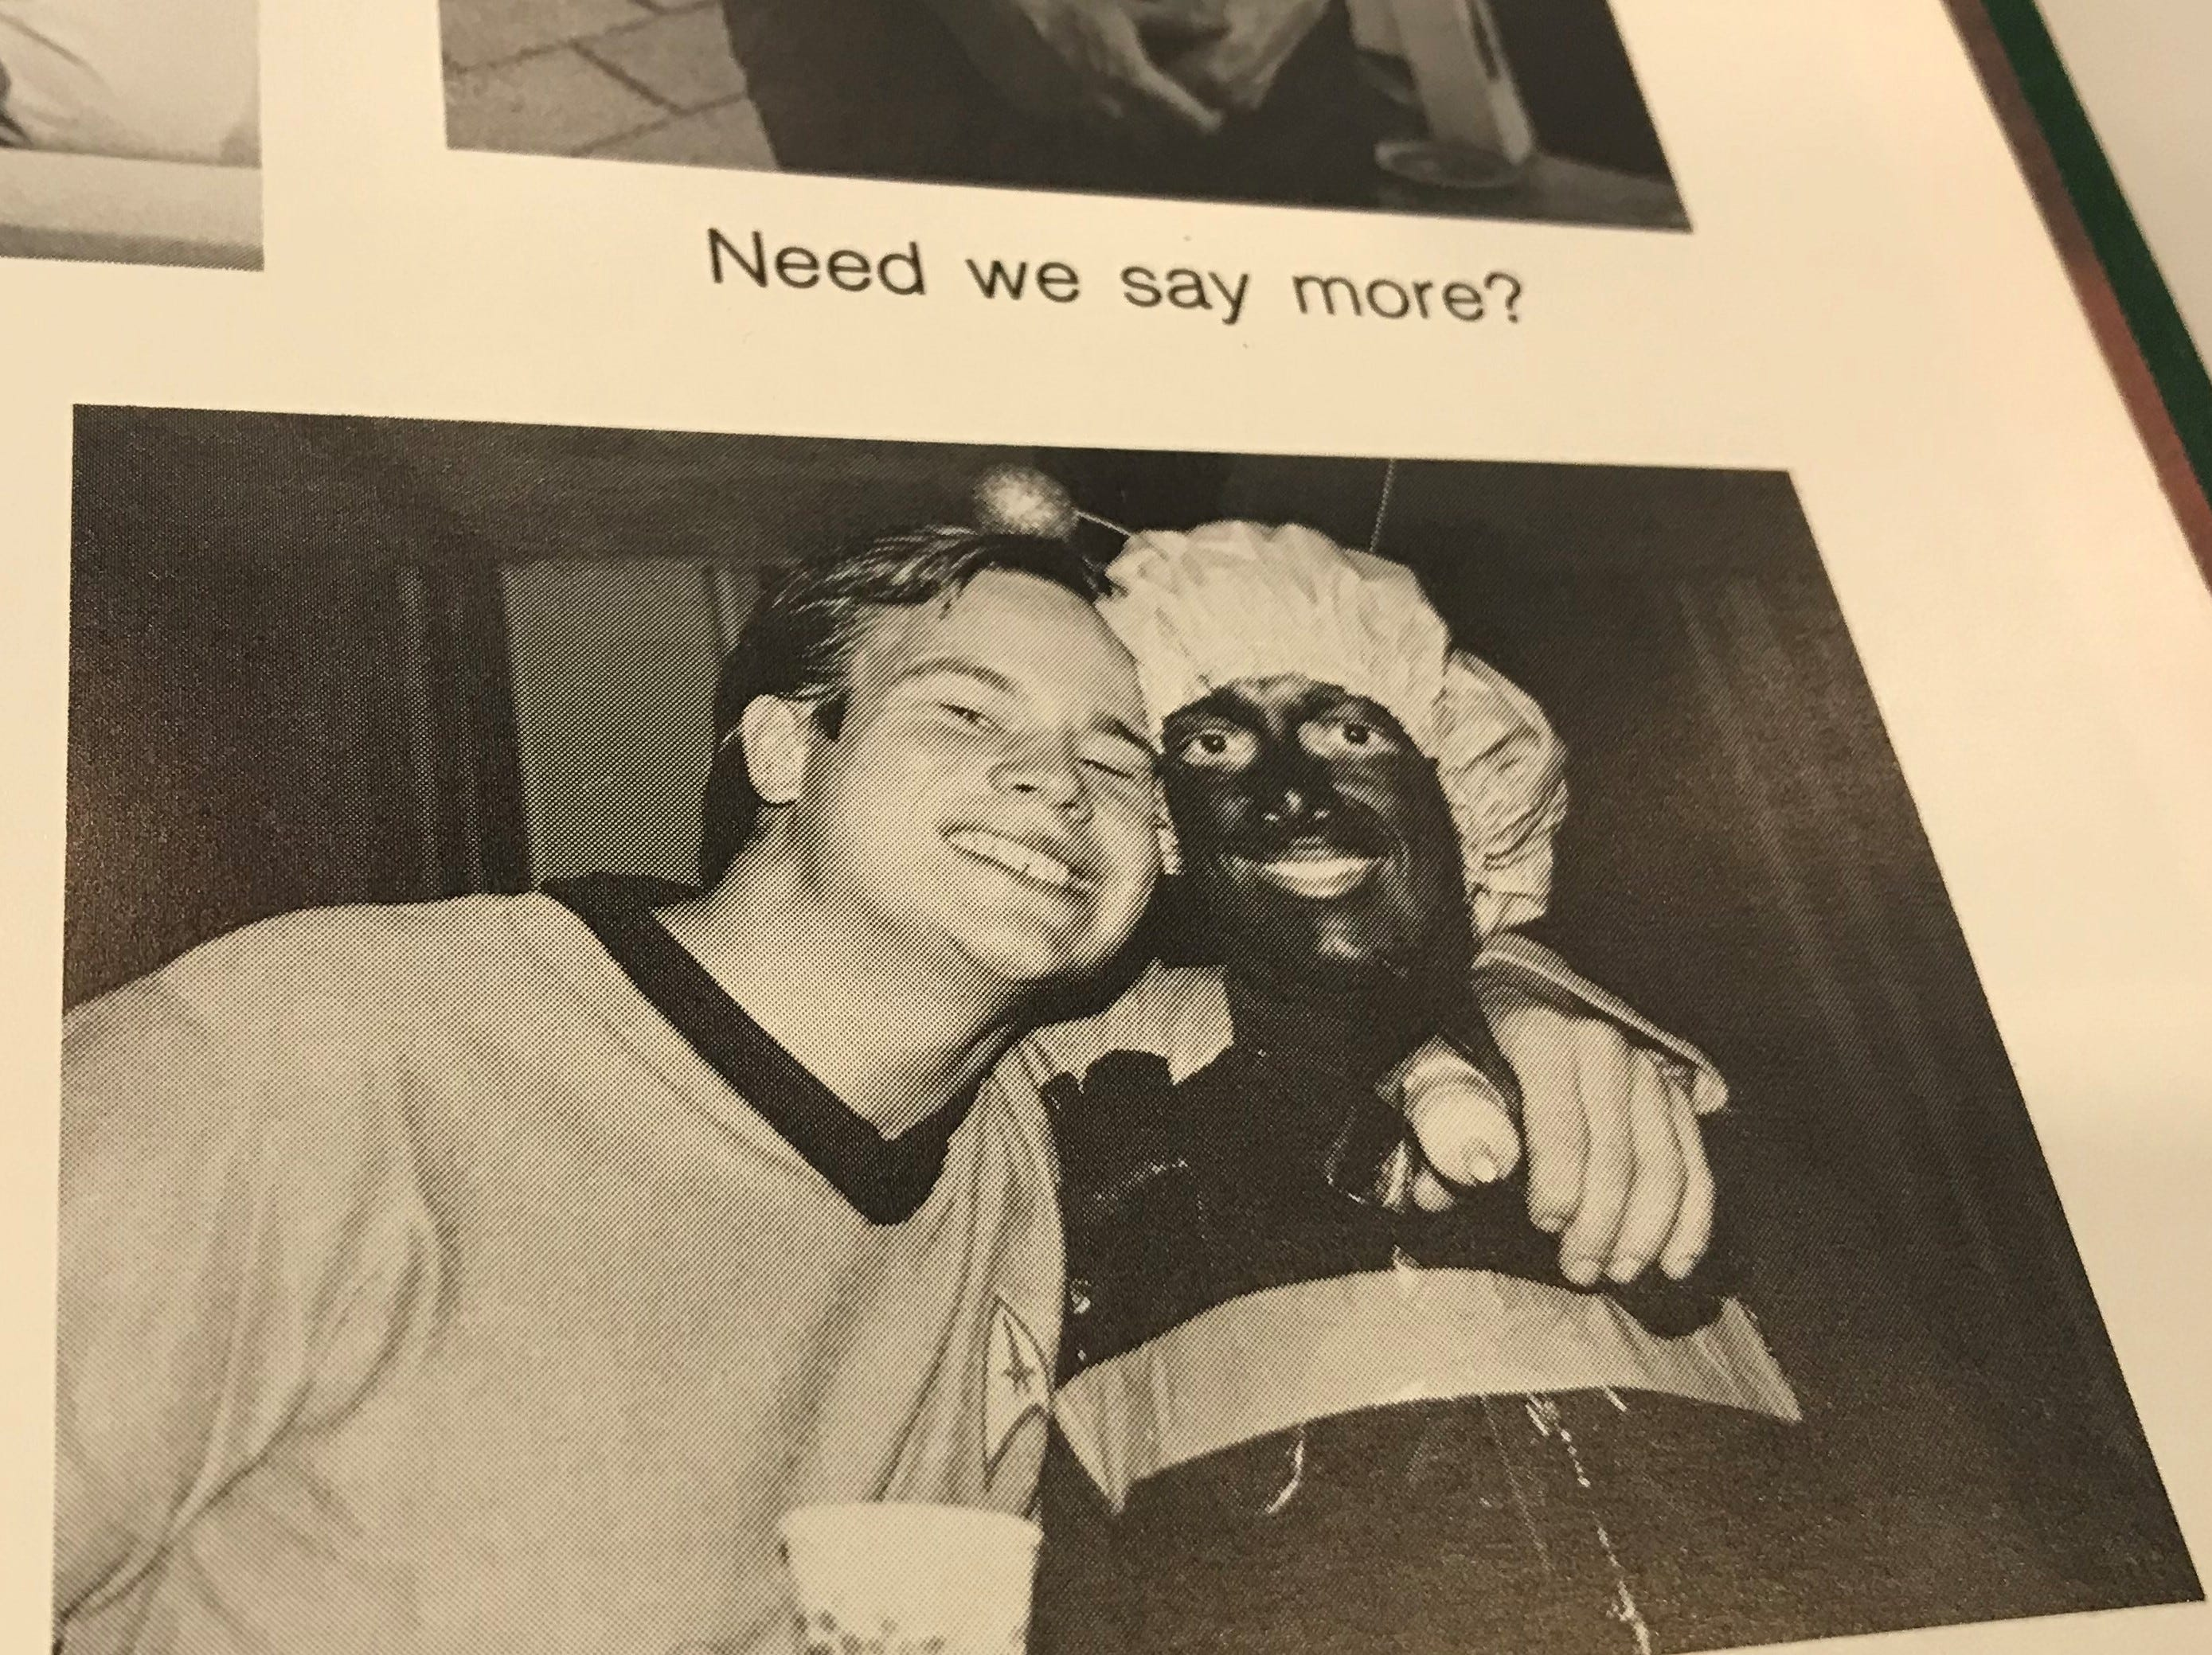 UVM's Pulse medical school yearbook photograph from 1984 shows a black and white image of a person in a bee costume and what appears to be blackface.